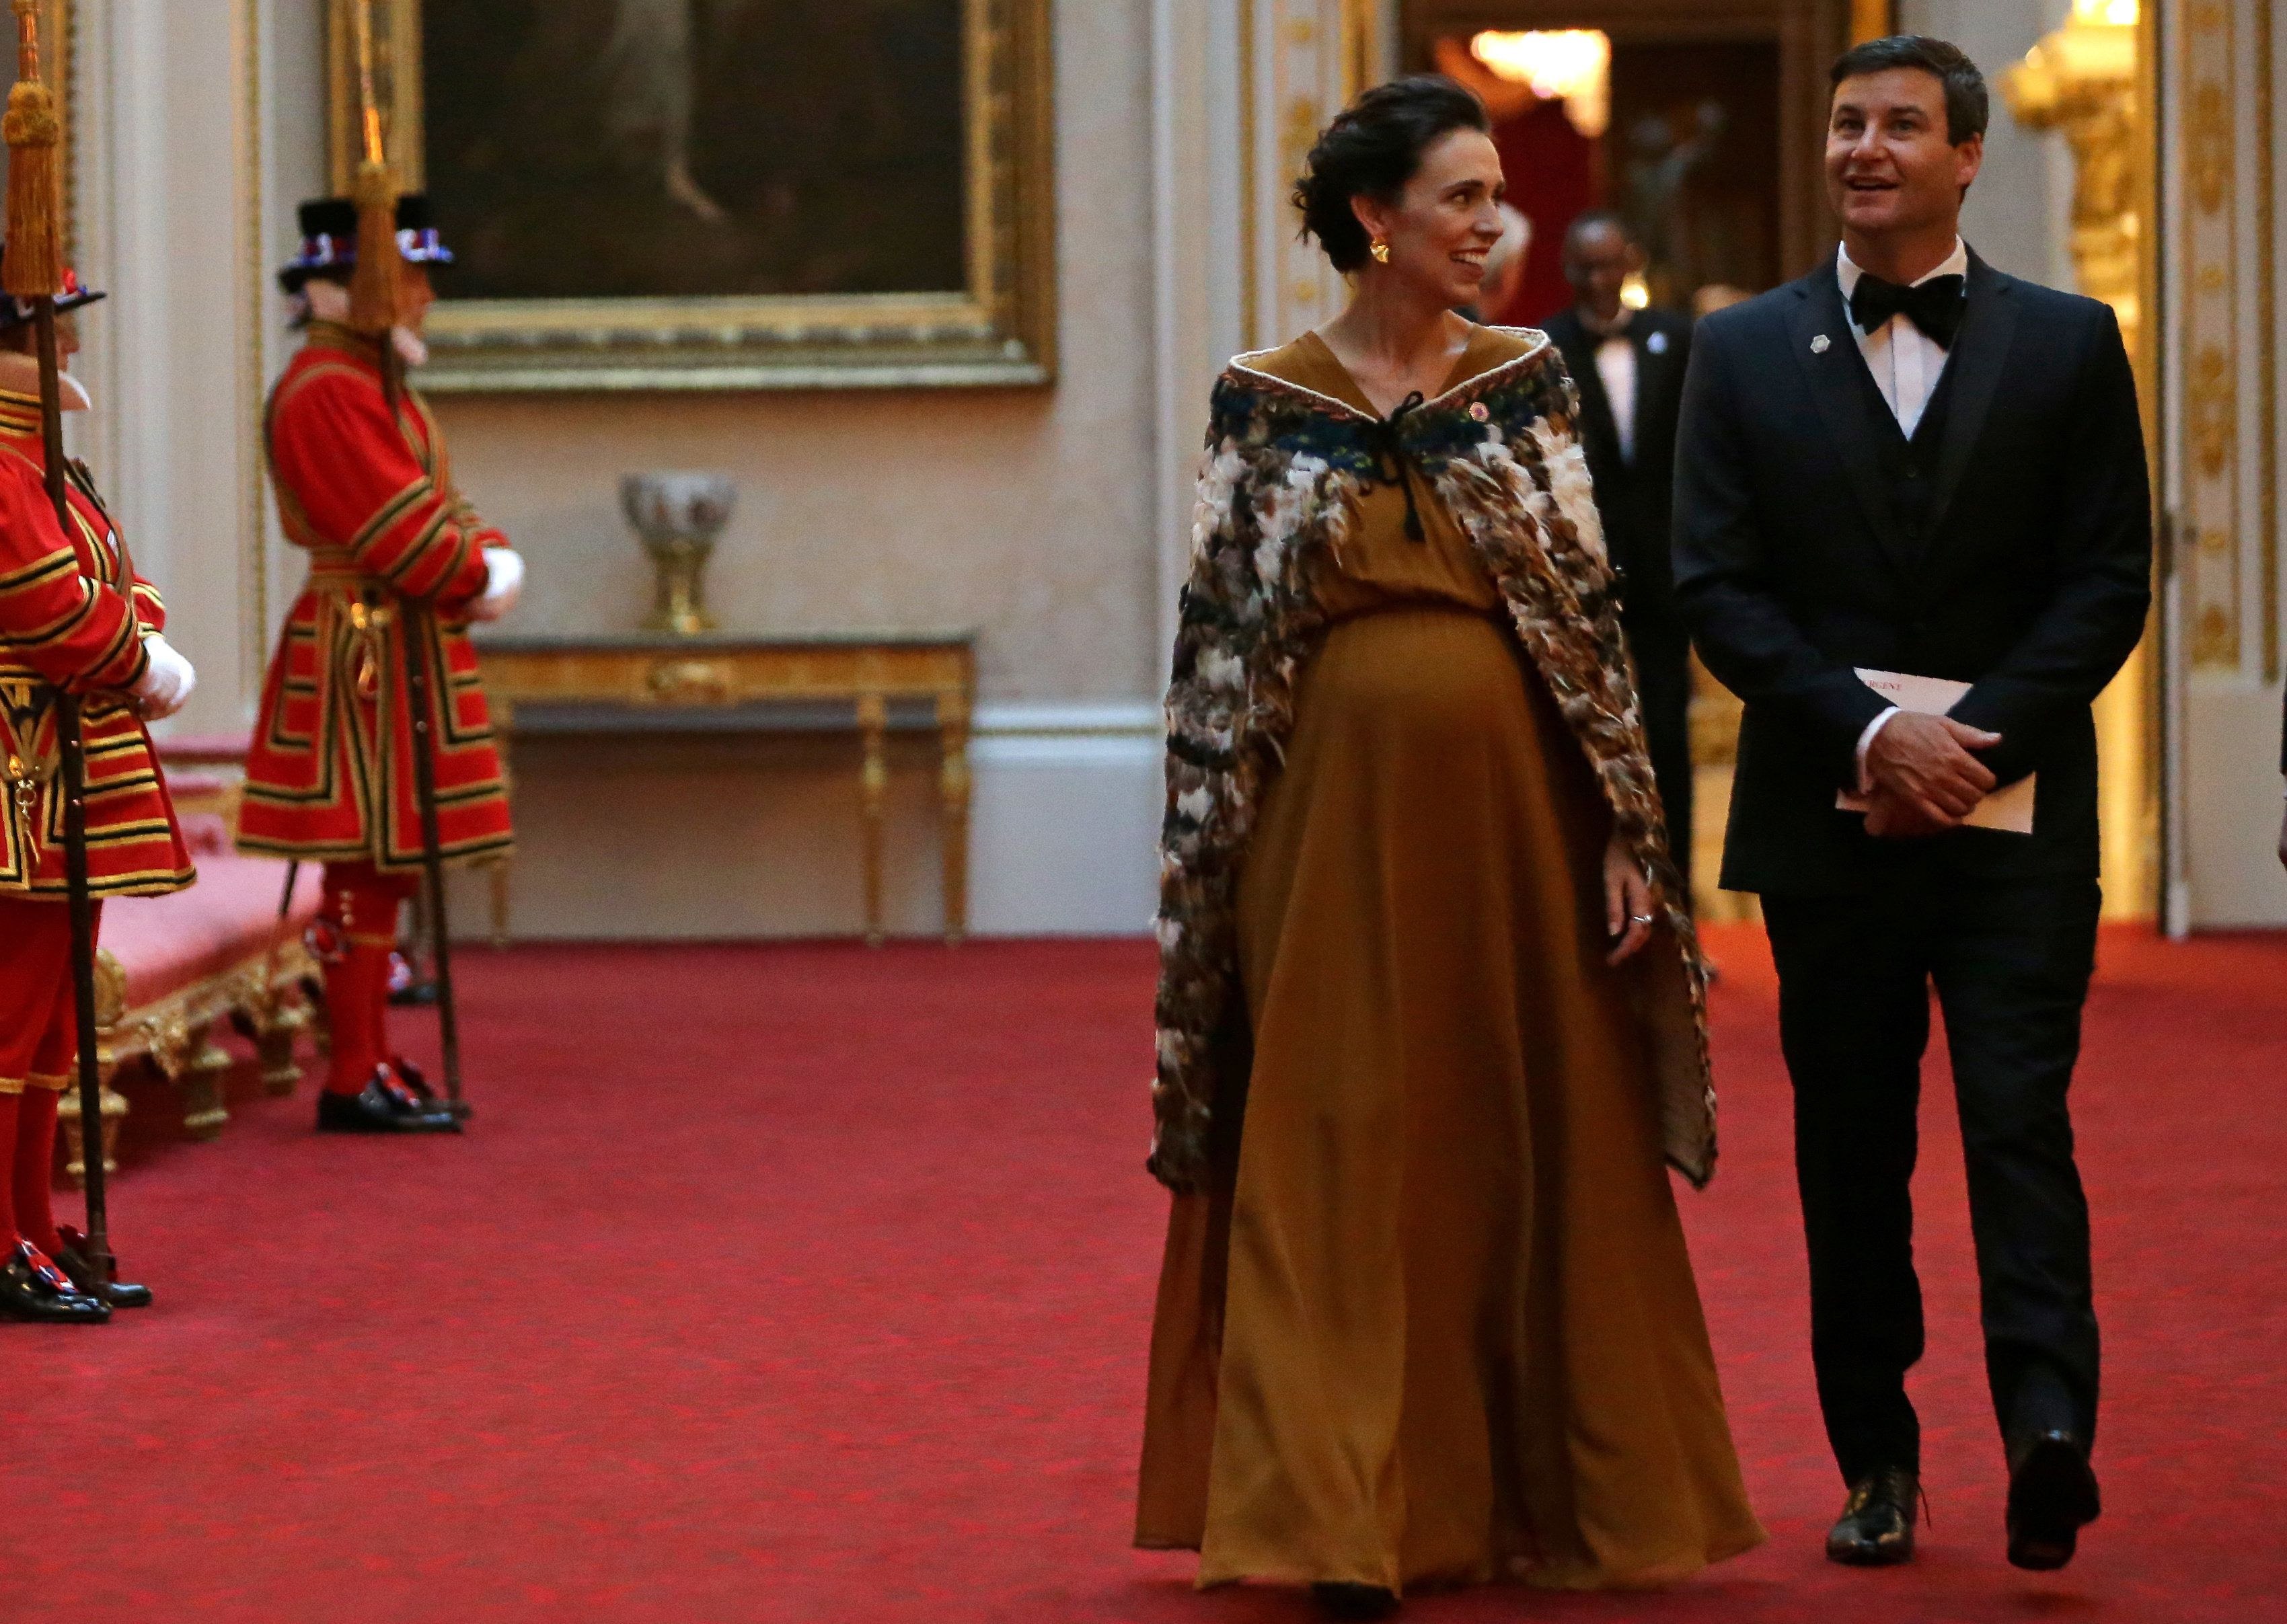 New Zealand's Prime Minister Jacinda Ardern arrives to attend The Queen's Dinner during The Commonwealth Heads of Government Meeting (CHOGM), at Buckingham Palace in London  on April 19, 2018.  Daniel Leal-Olivas/Pool via Reuters